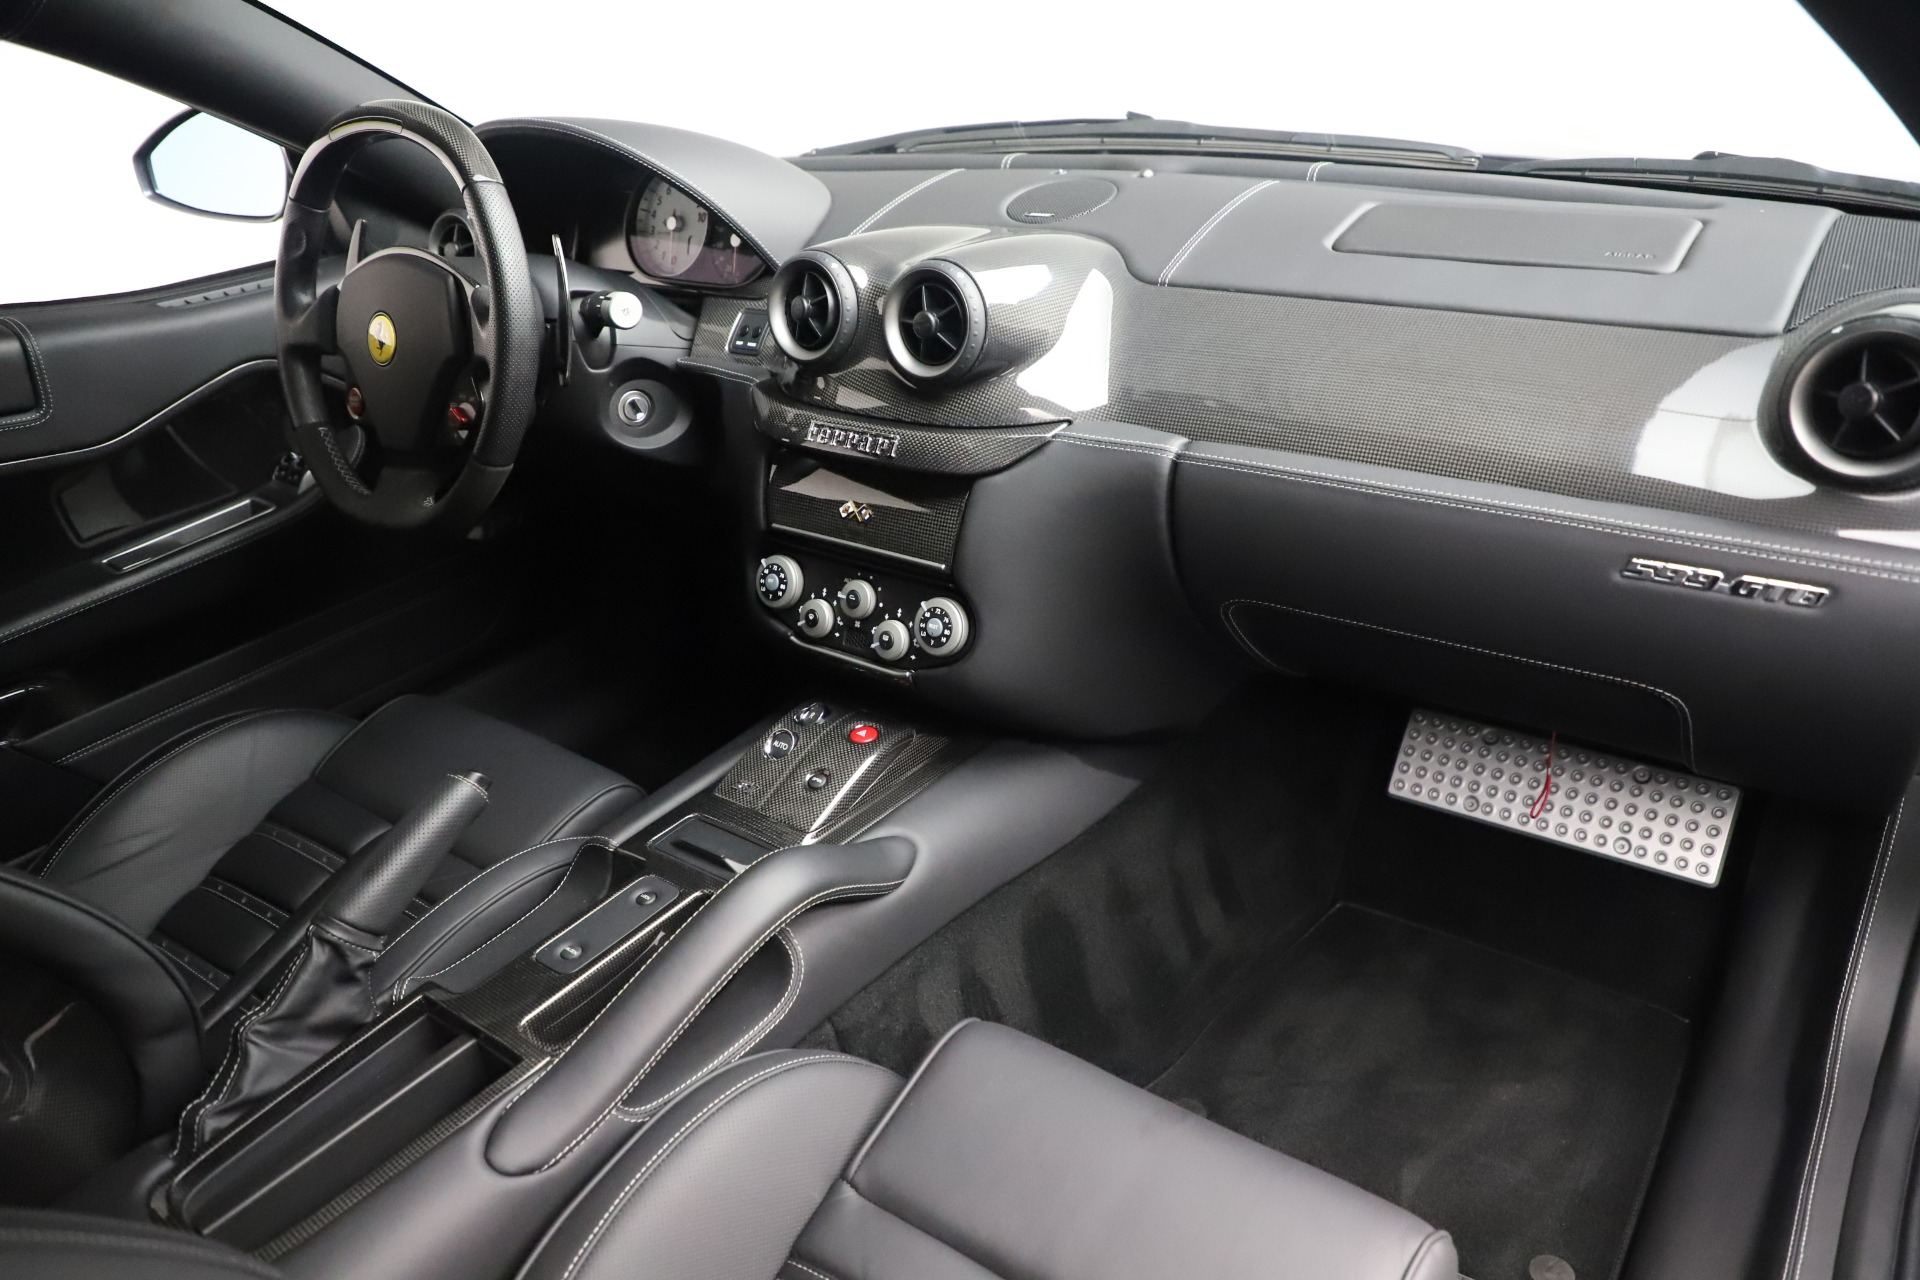 Used 2010 Ferrari 599 GTB Fiorano HGTE For Sale In Westport, CT 3544_p16